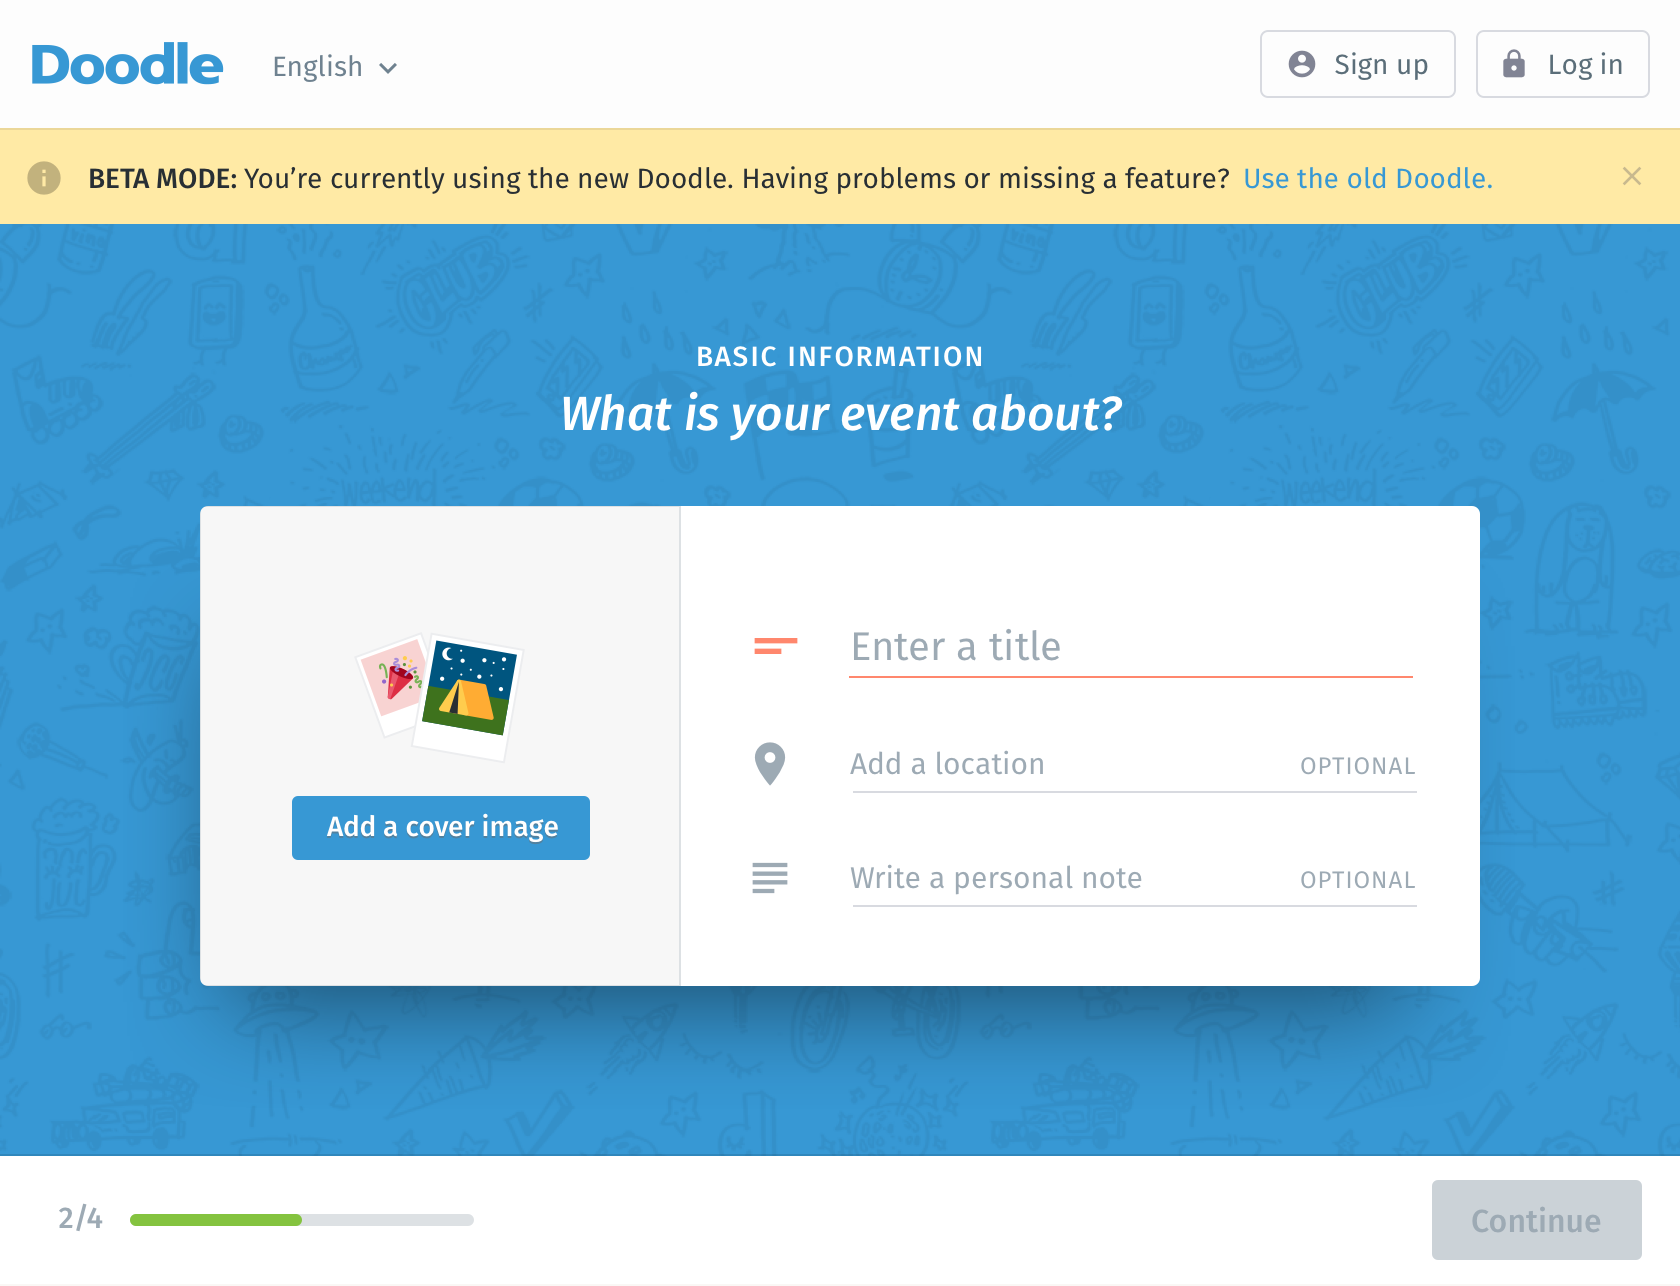 Example of engagement tactic: possibility of adding a cover image to the event.